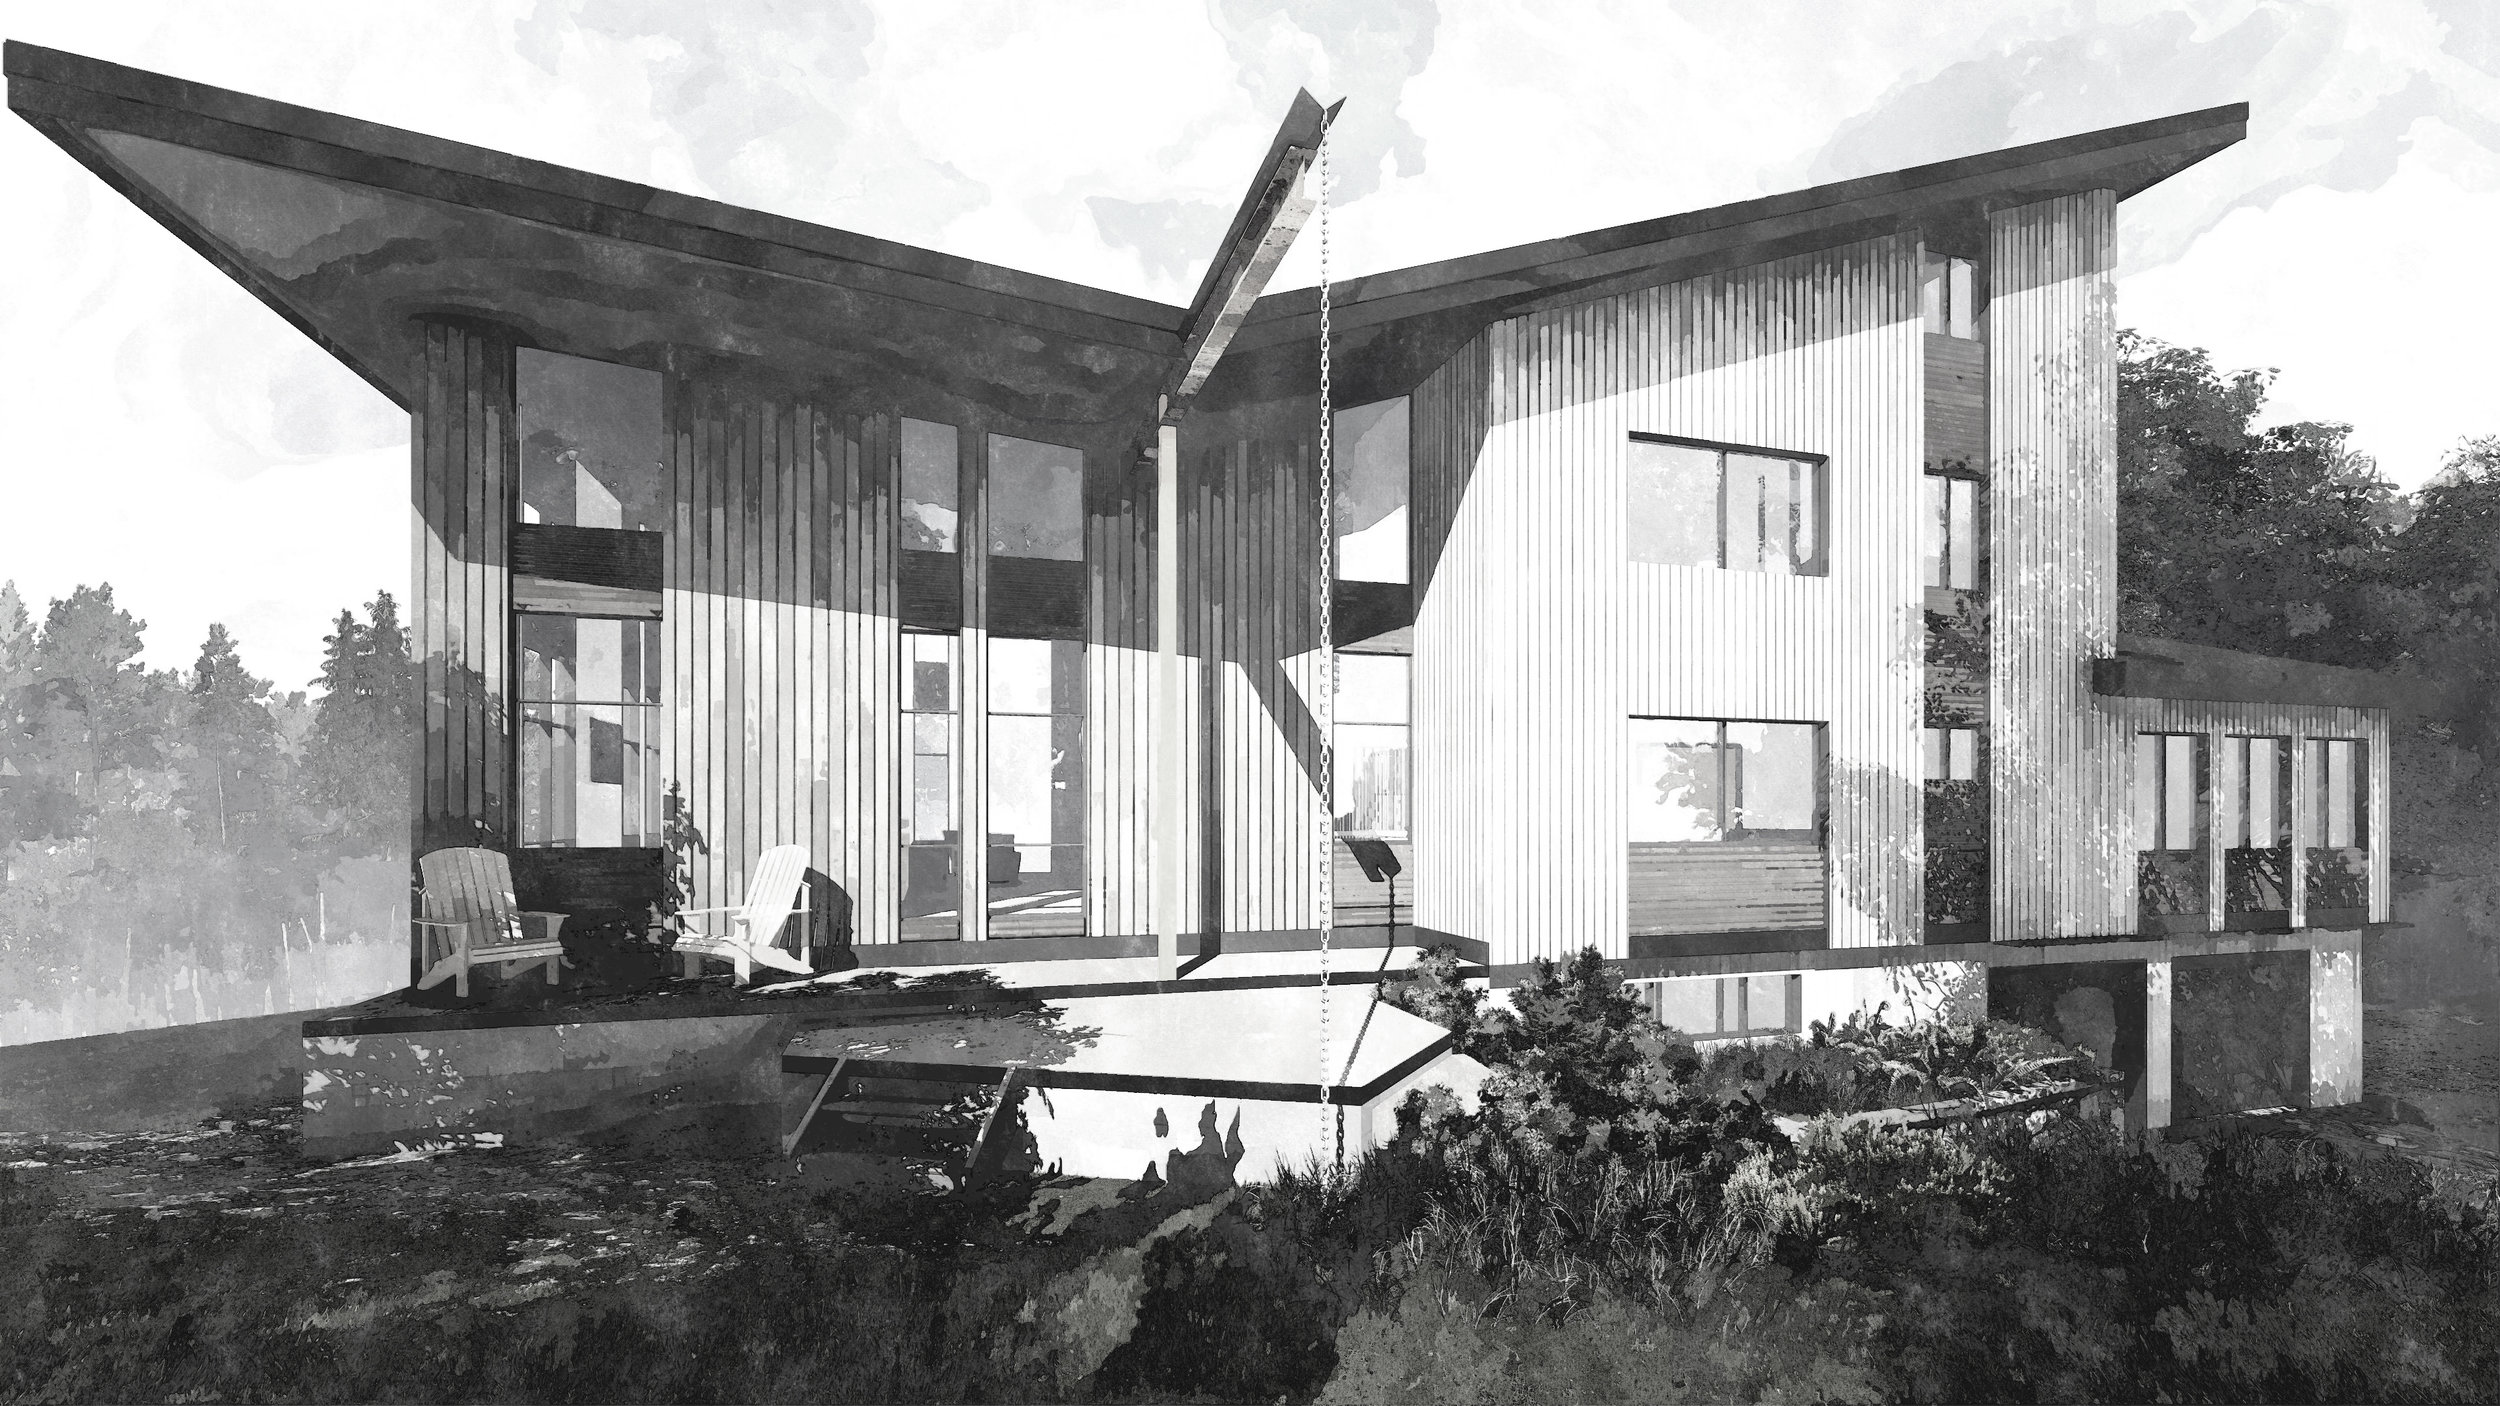 Exterior 1 - Roof Option 2_FotoSketcher2_BW.jpg